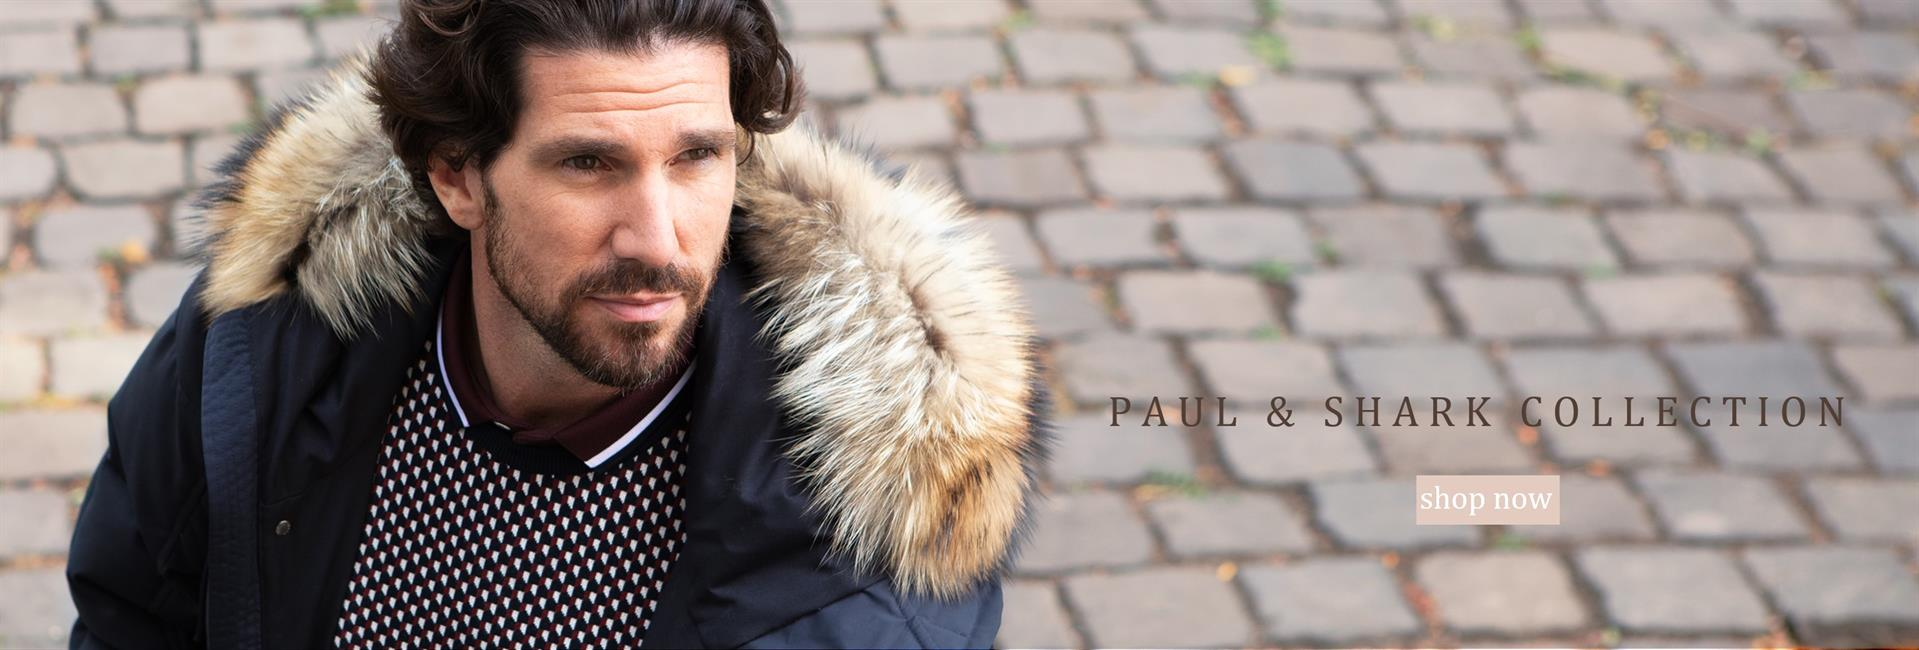 Paul & Shark Maison Louis Online Shop